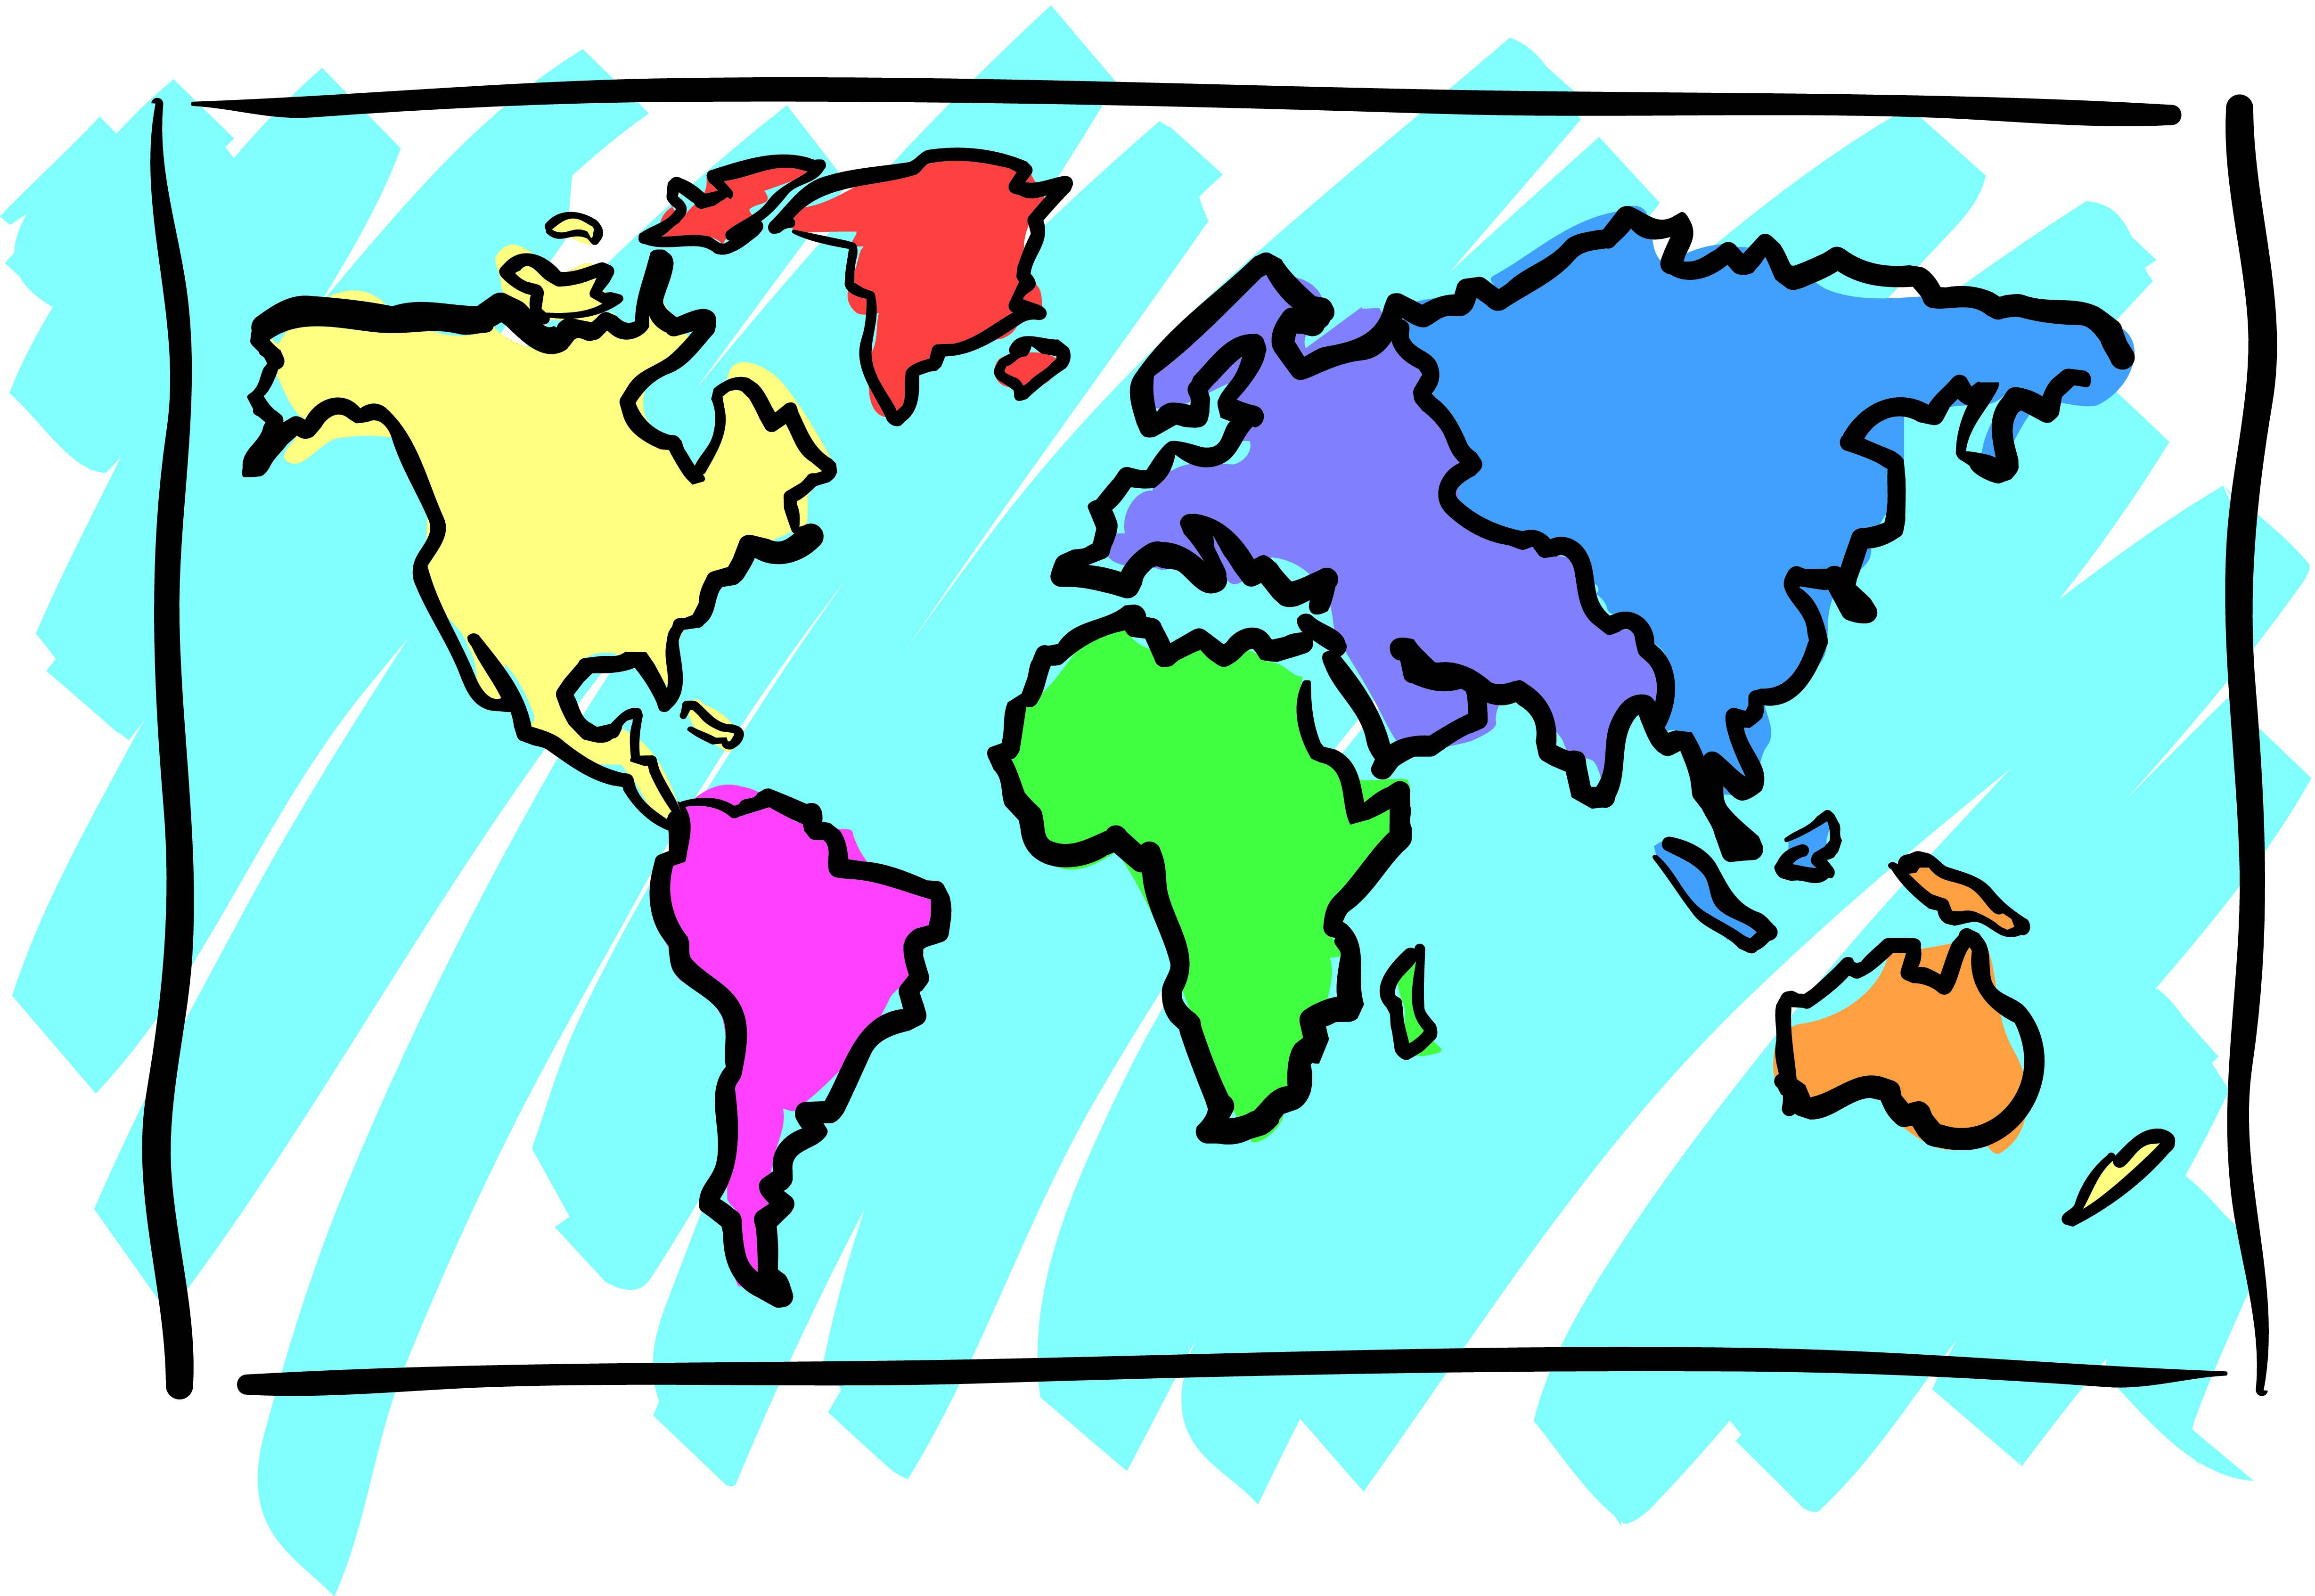 World Continent Map Cartoon free image